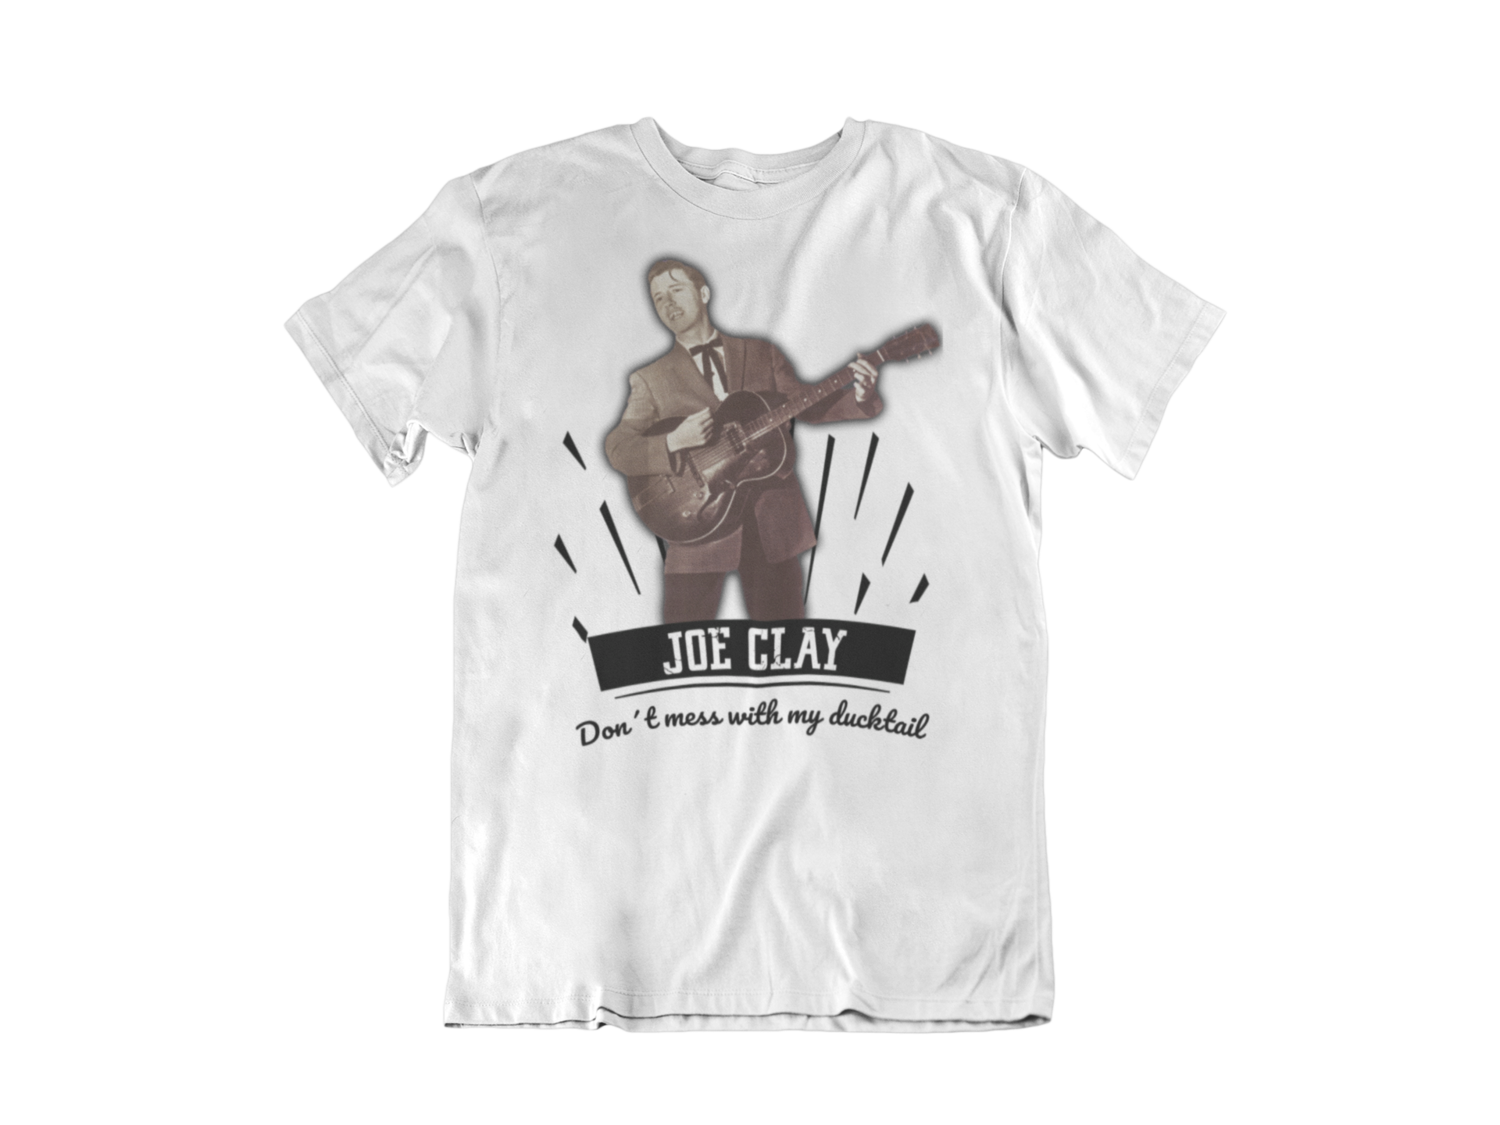 JOE CLAY T-SHIRT FOR MEN